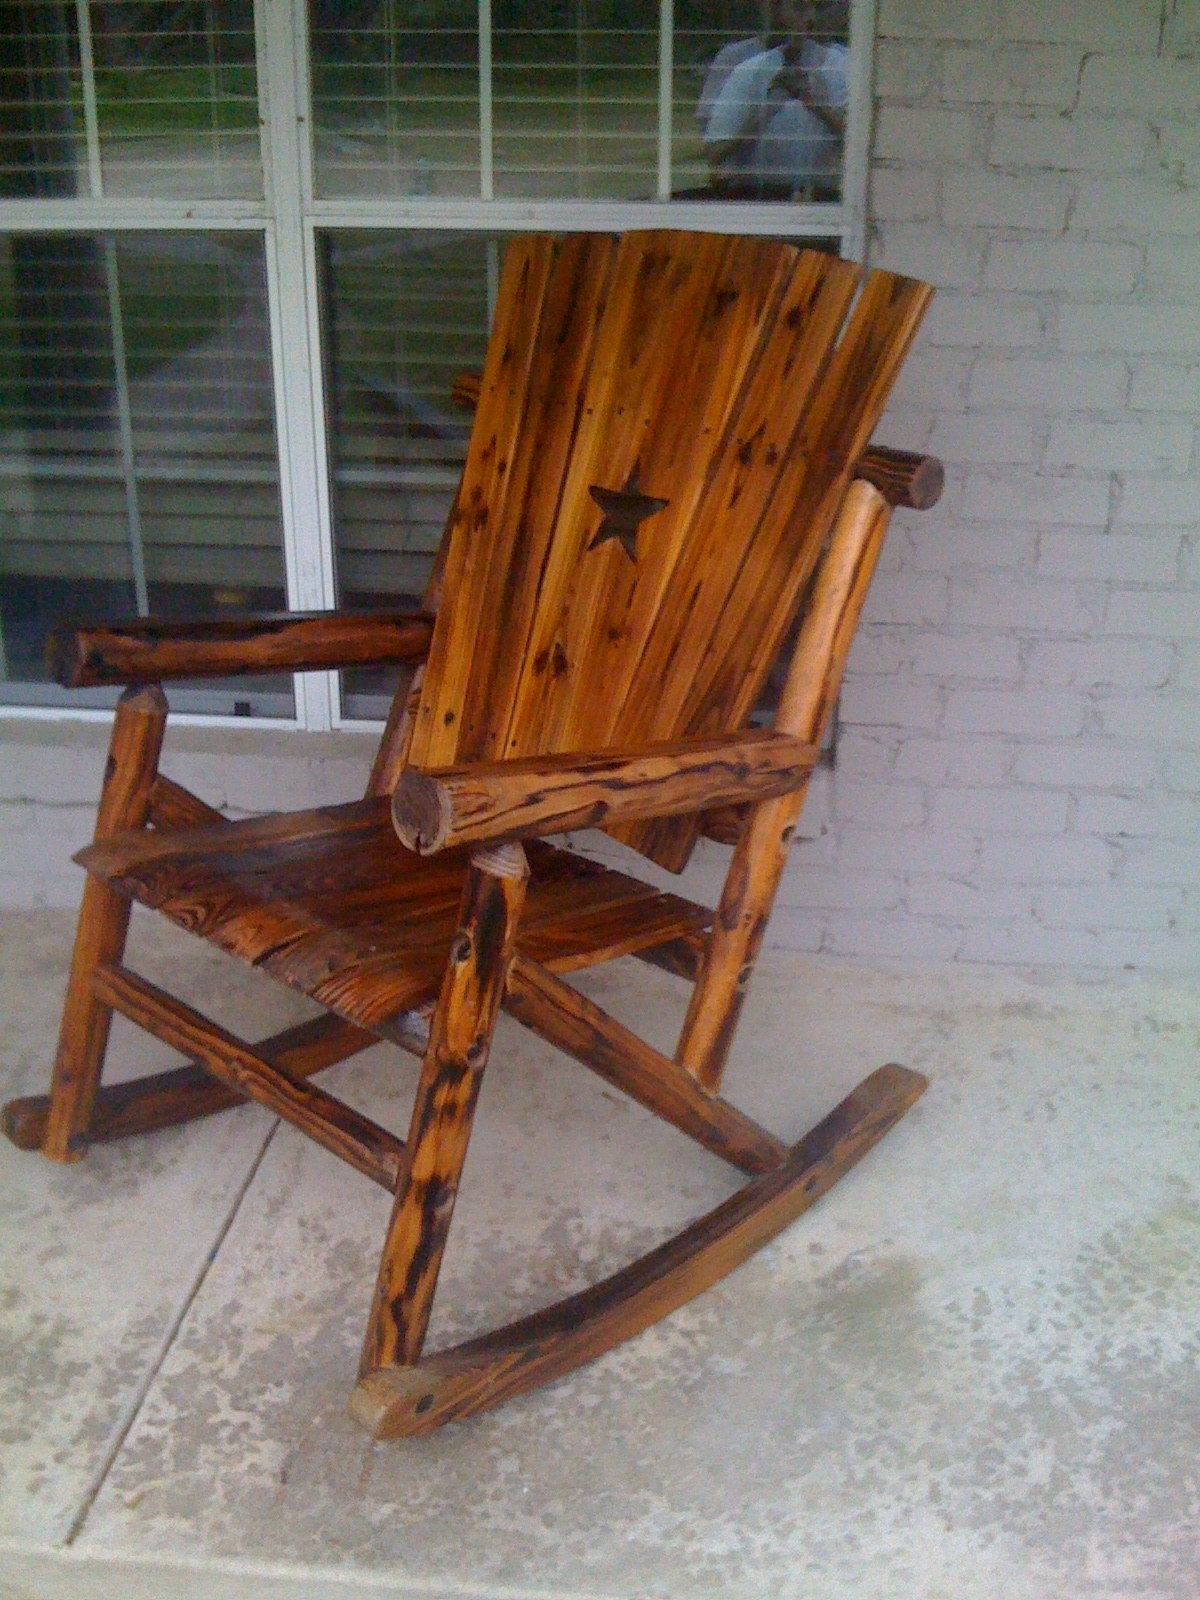 Outdoor Wooden Rocking Chairs Rustic : Pleasure Outdoor Wooden Inside Retro Outdoor Rocking Chairs (#9 of 15)